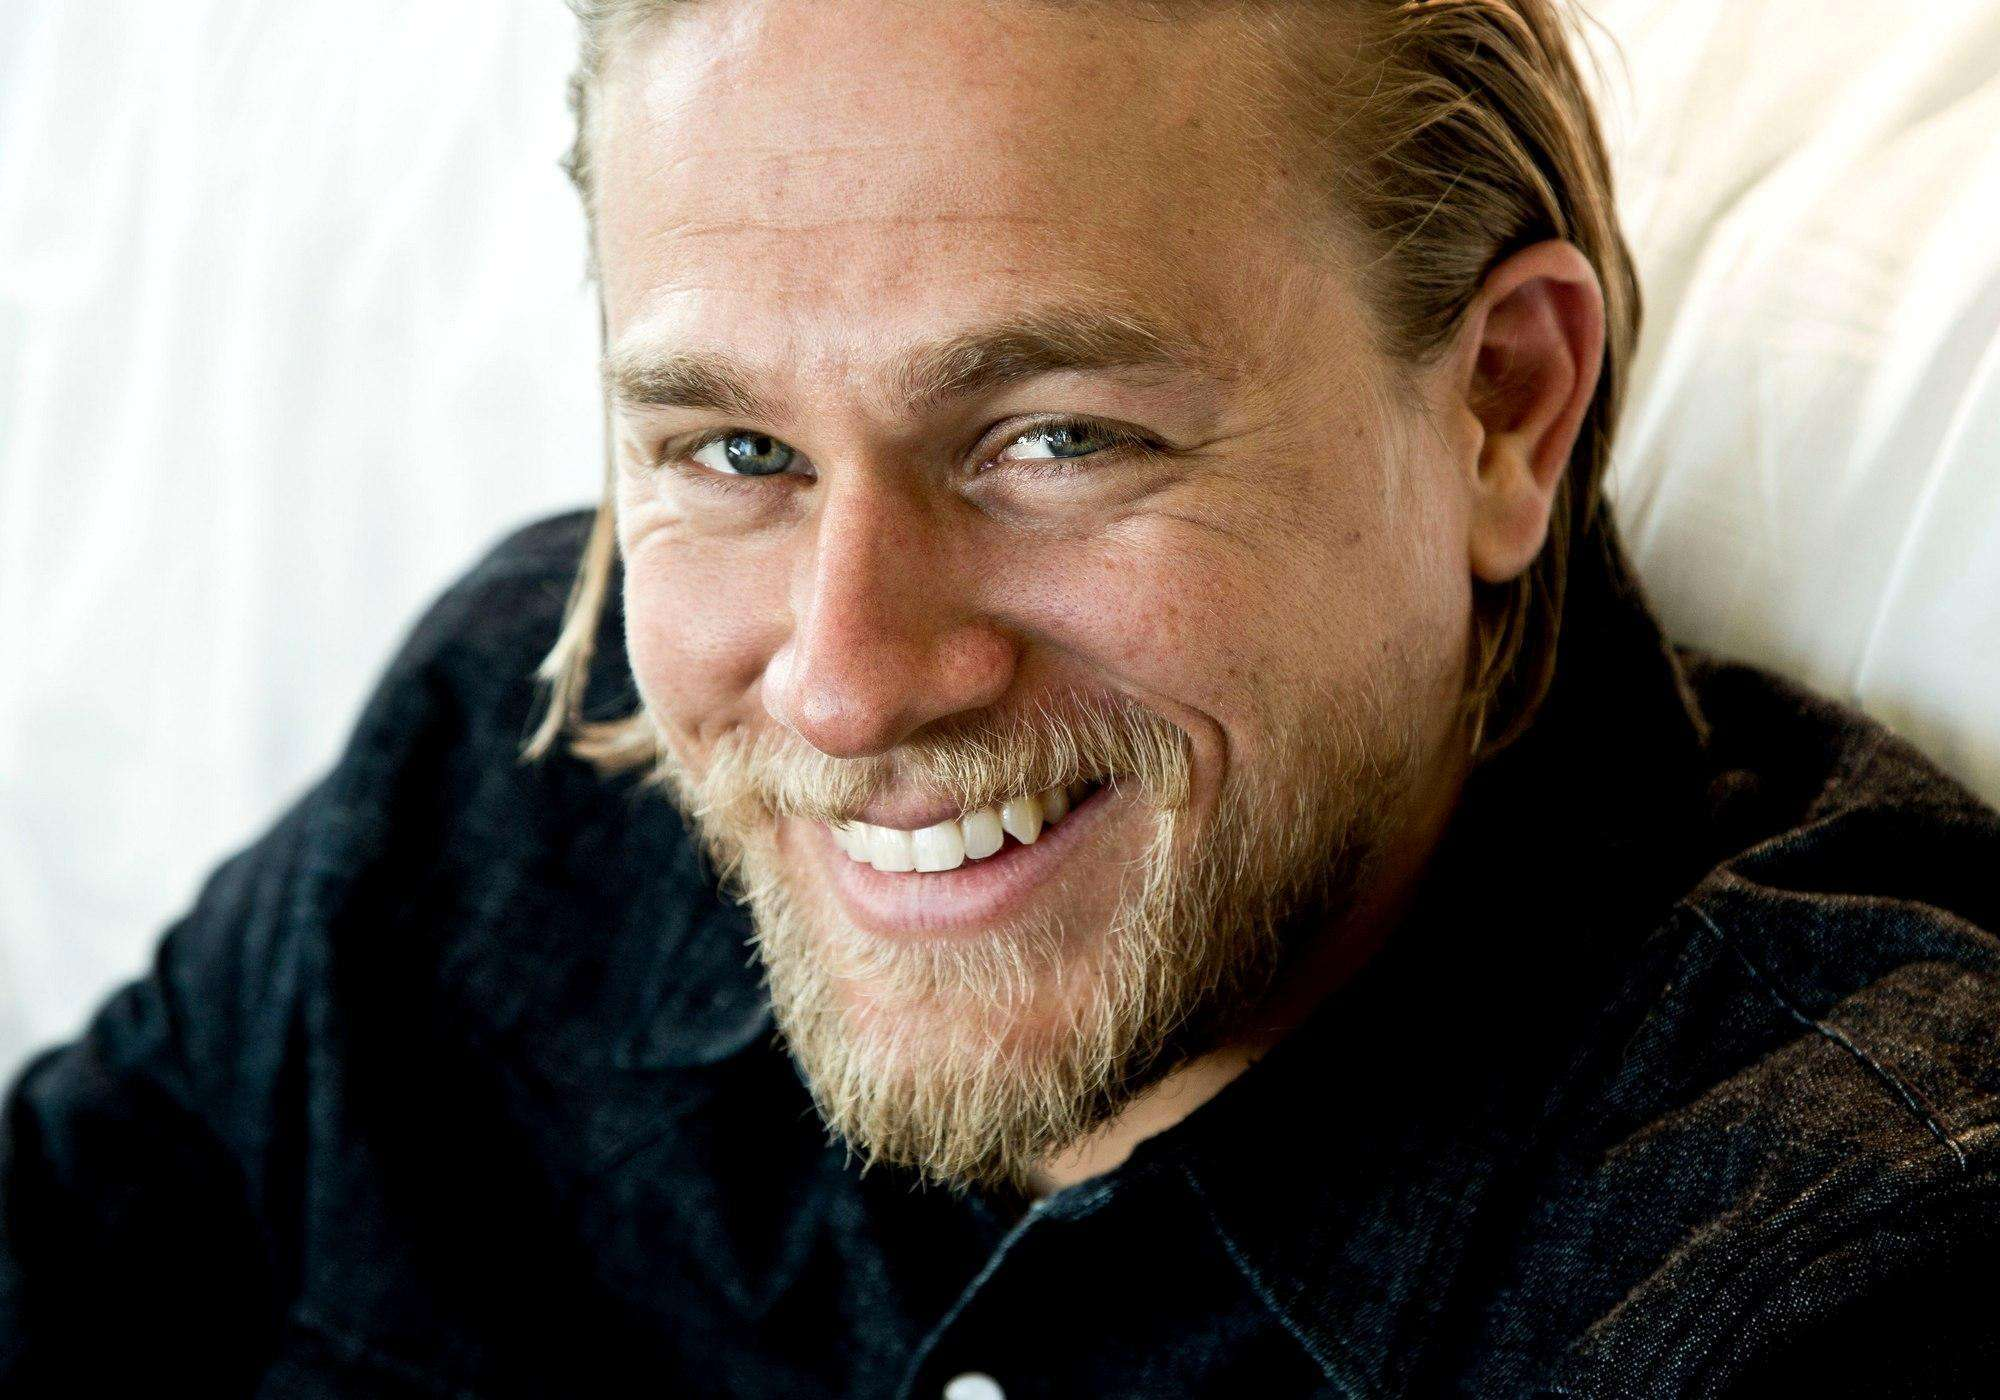 Free Hd Wallpaper Download Charlie Hunnam Wallpaper: Charlie Hunnam HD Wallpapers For Desktop Download